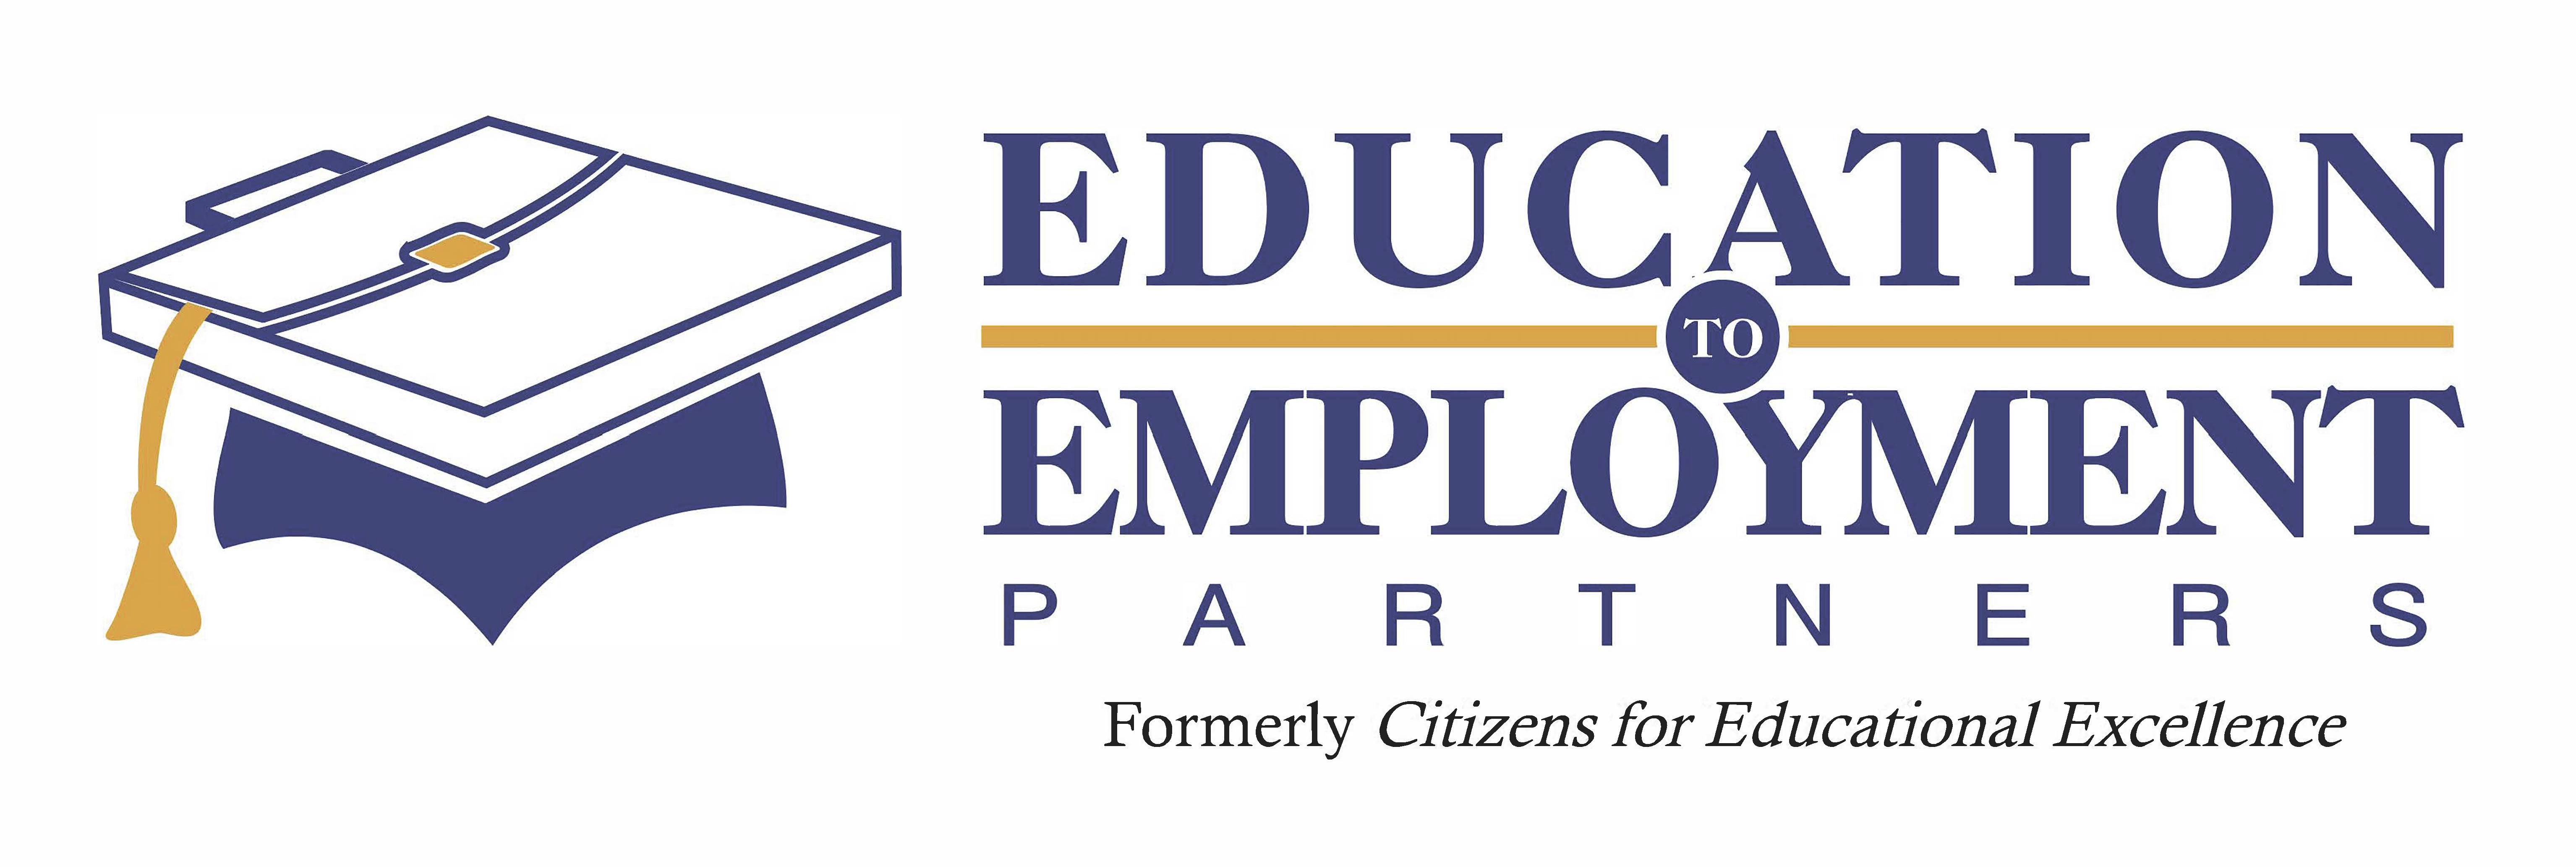 Education to Employment Partners logo